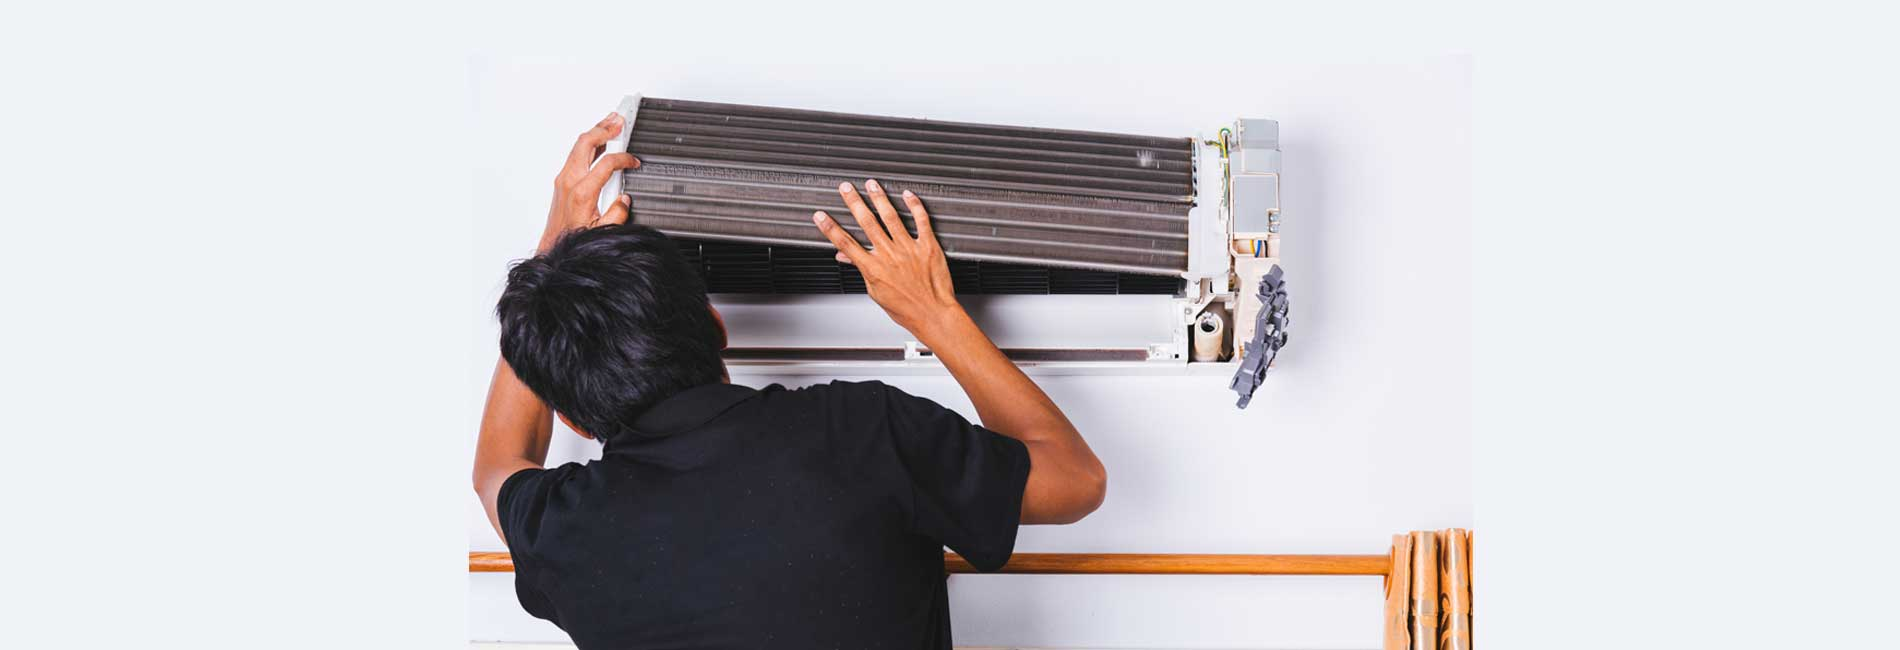 Air Condition Service in Porur